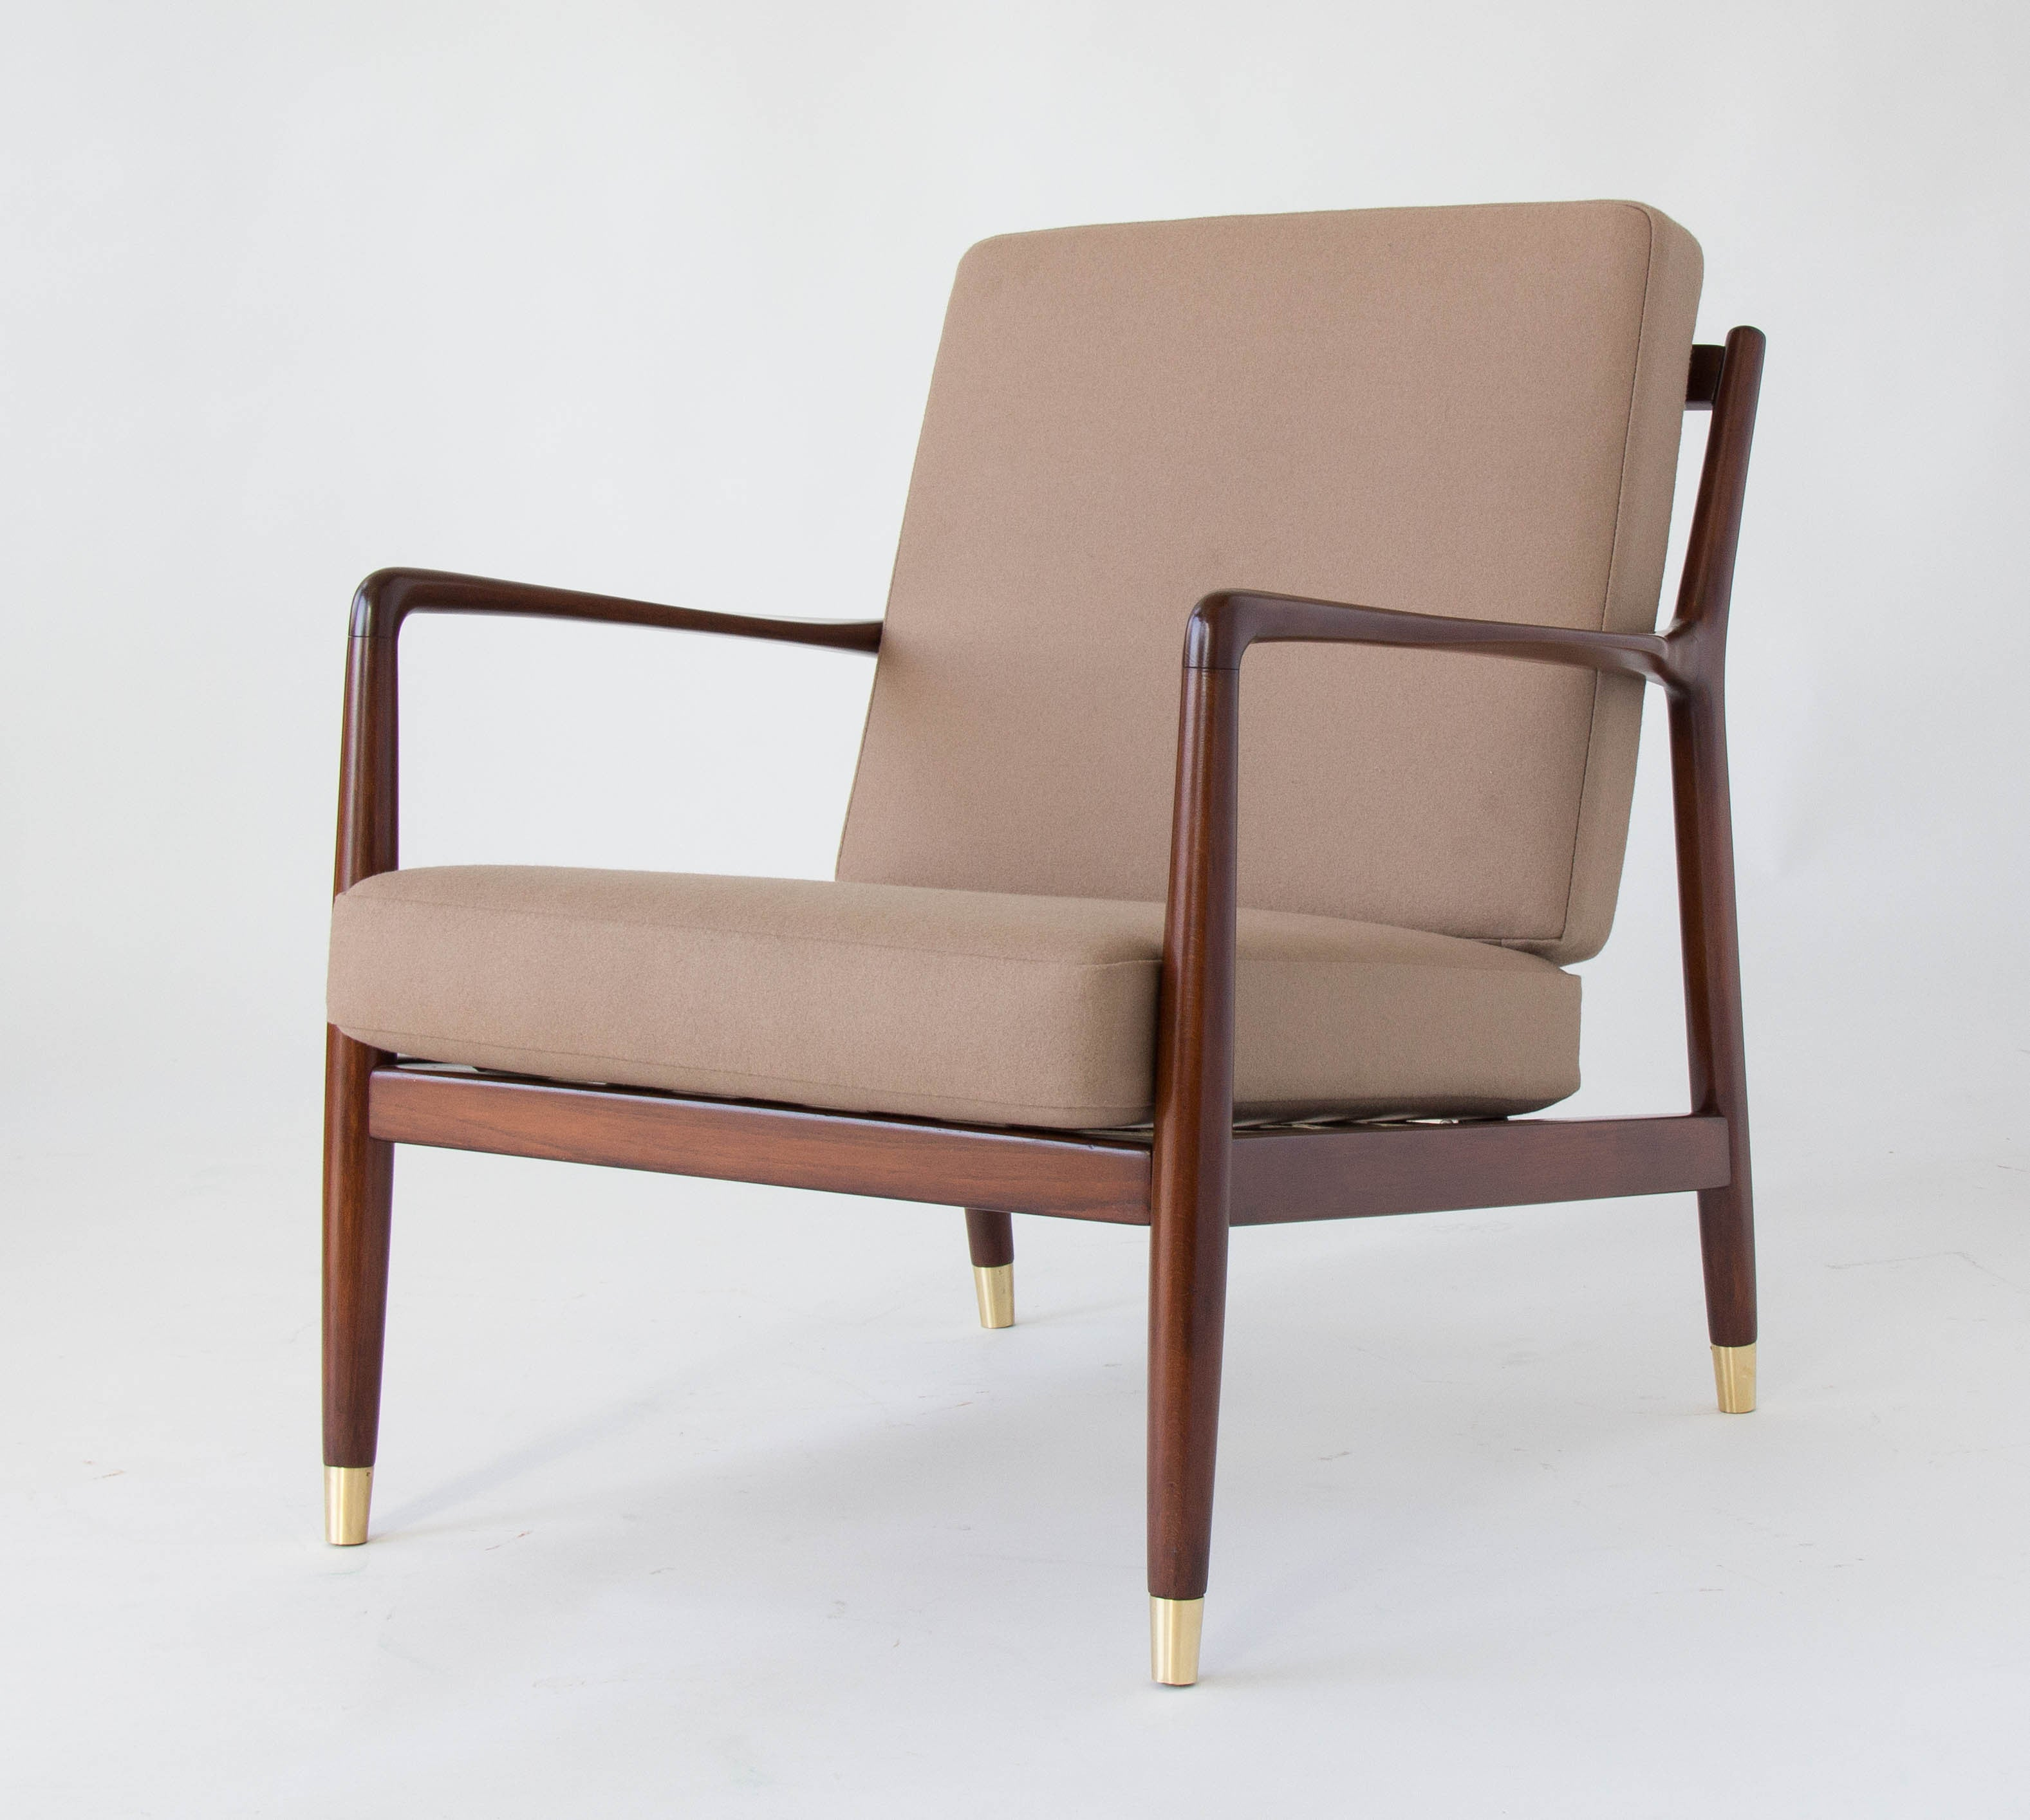 Pair Of Lounge Chairs With Brass Capped Legs By Folke Ohlsson For DUX